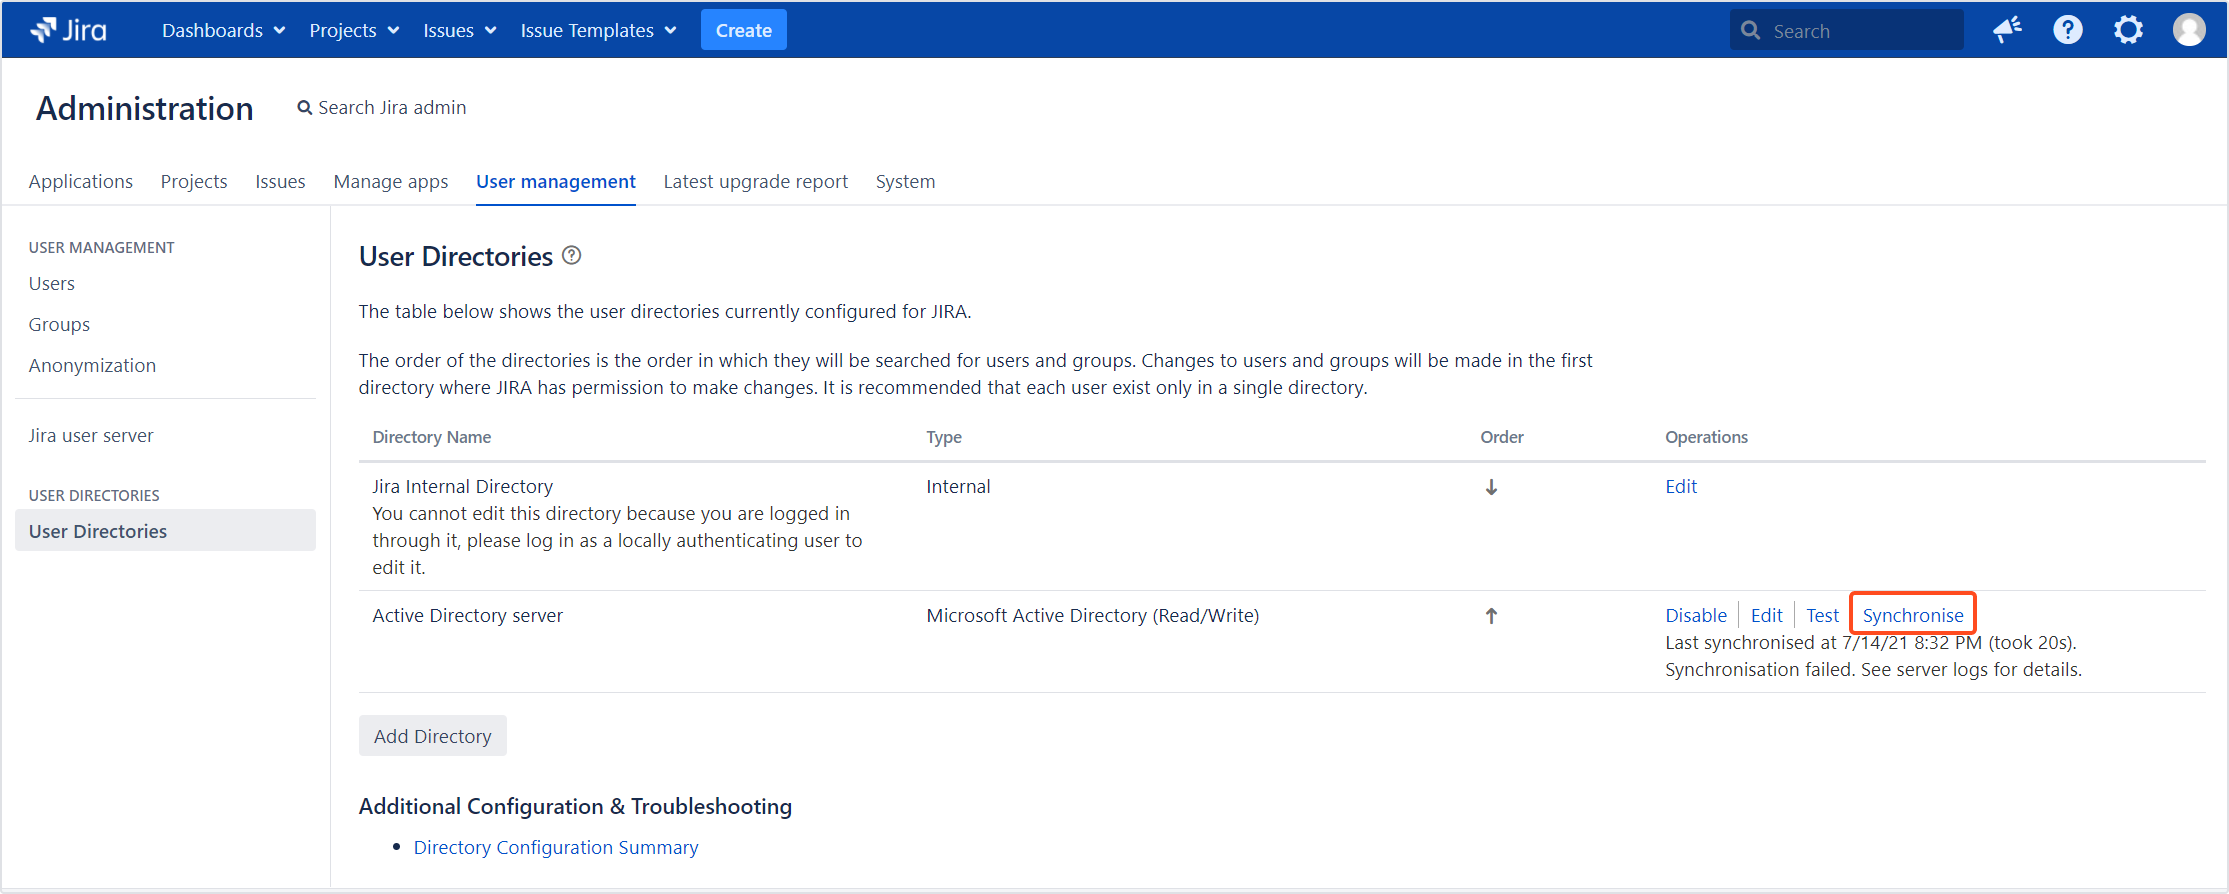 Active Directory Attributes Sync for Jira - Update Data: Synchronizing app